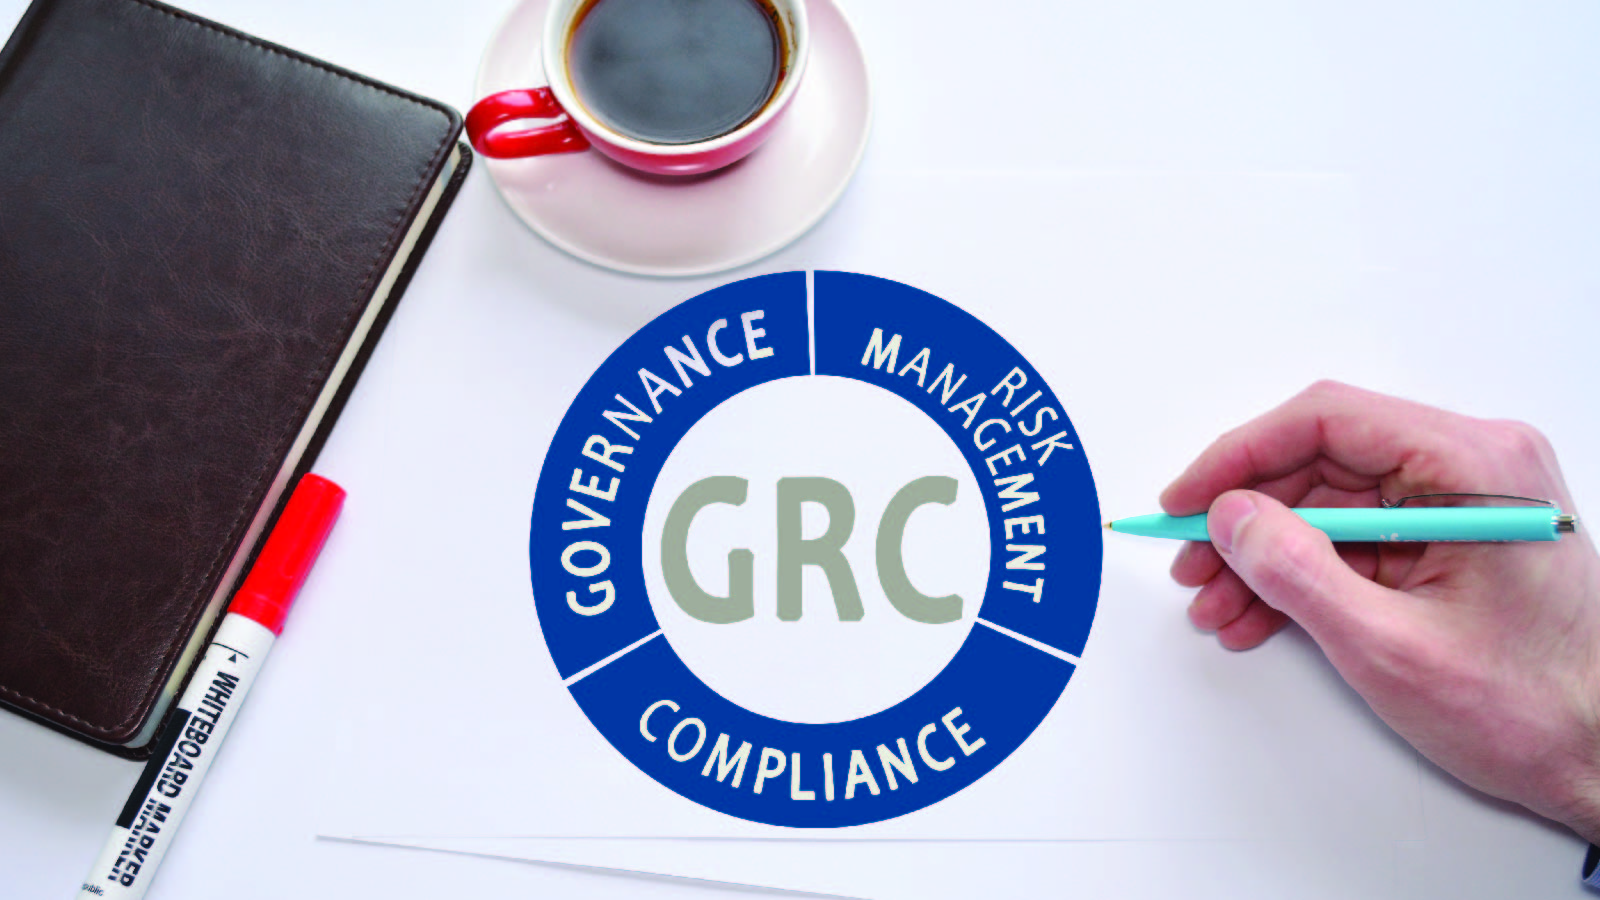 Effective Implementation of GRC technology